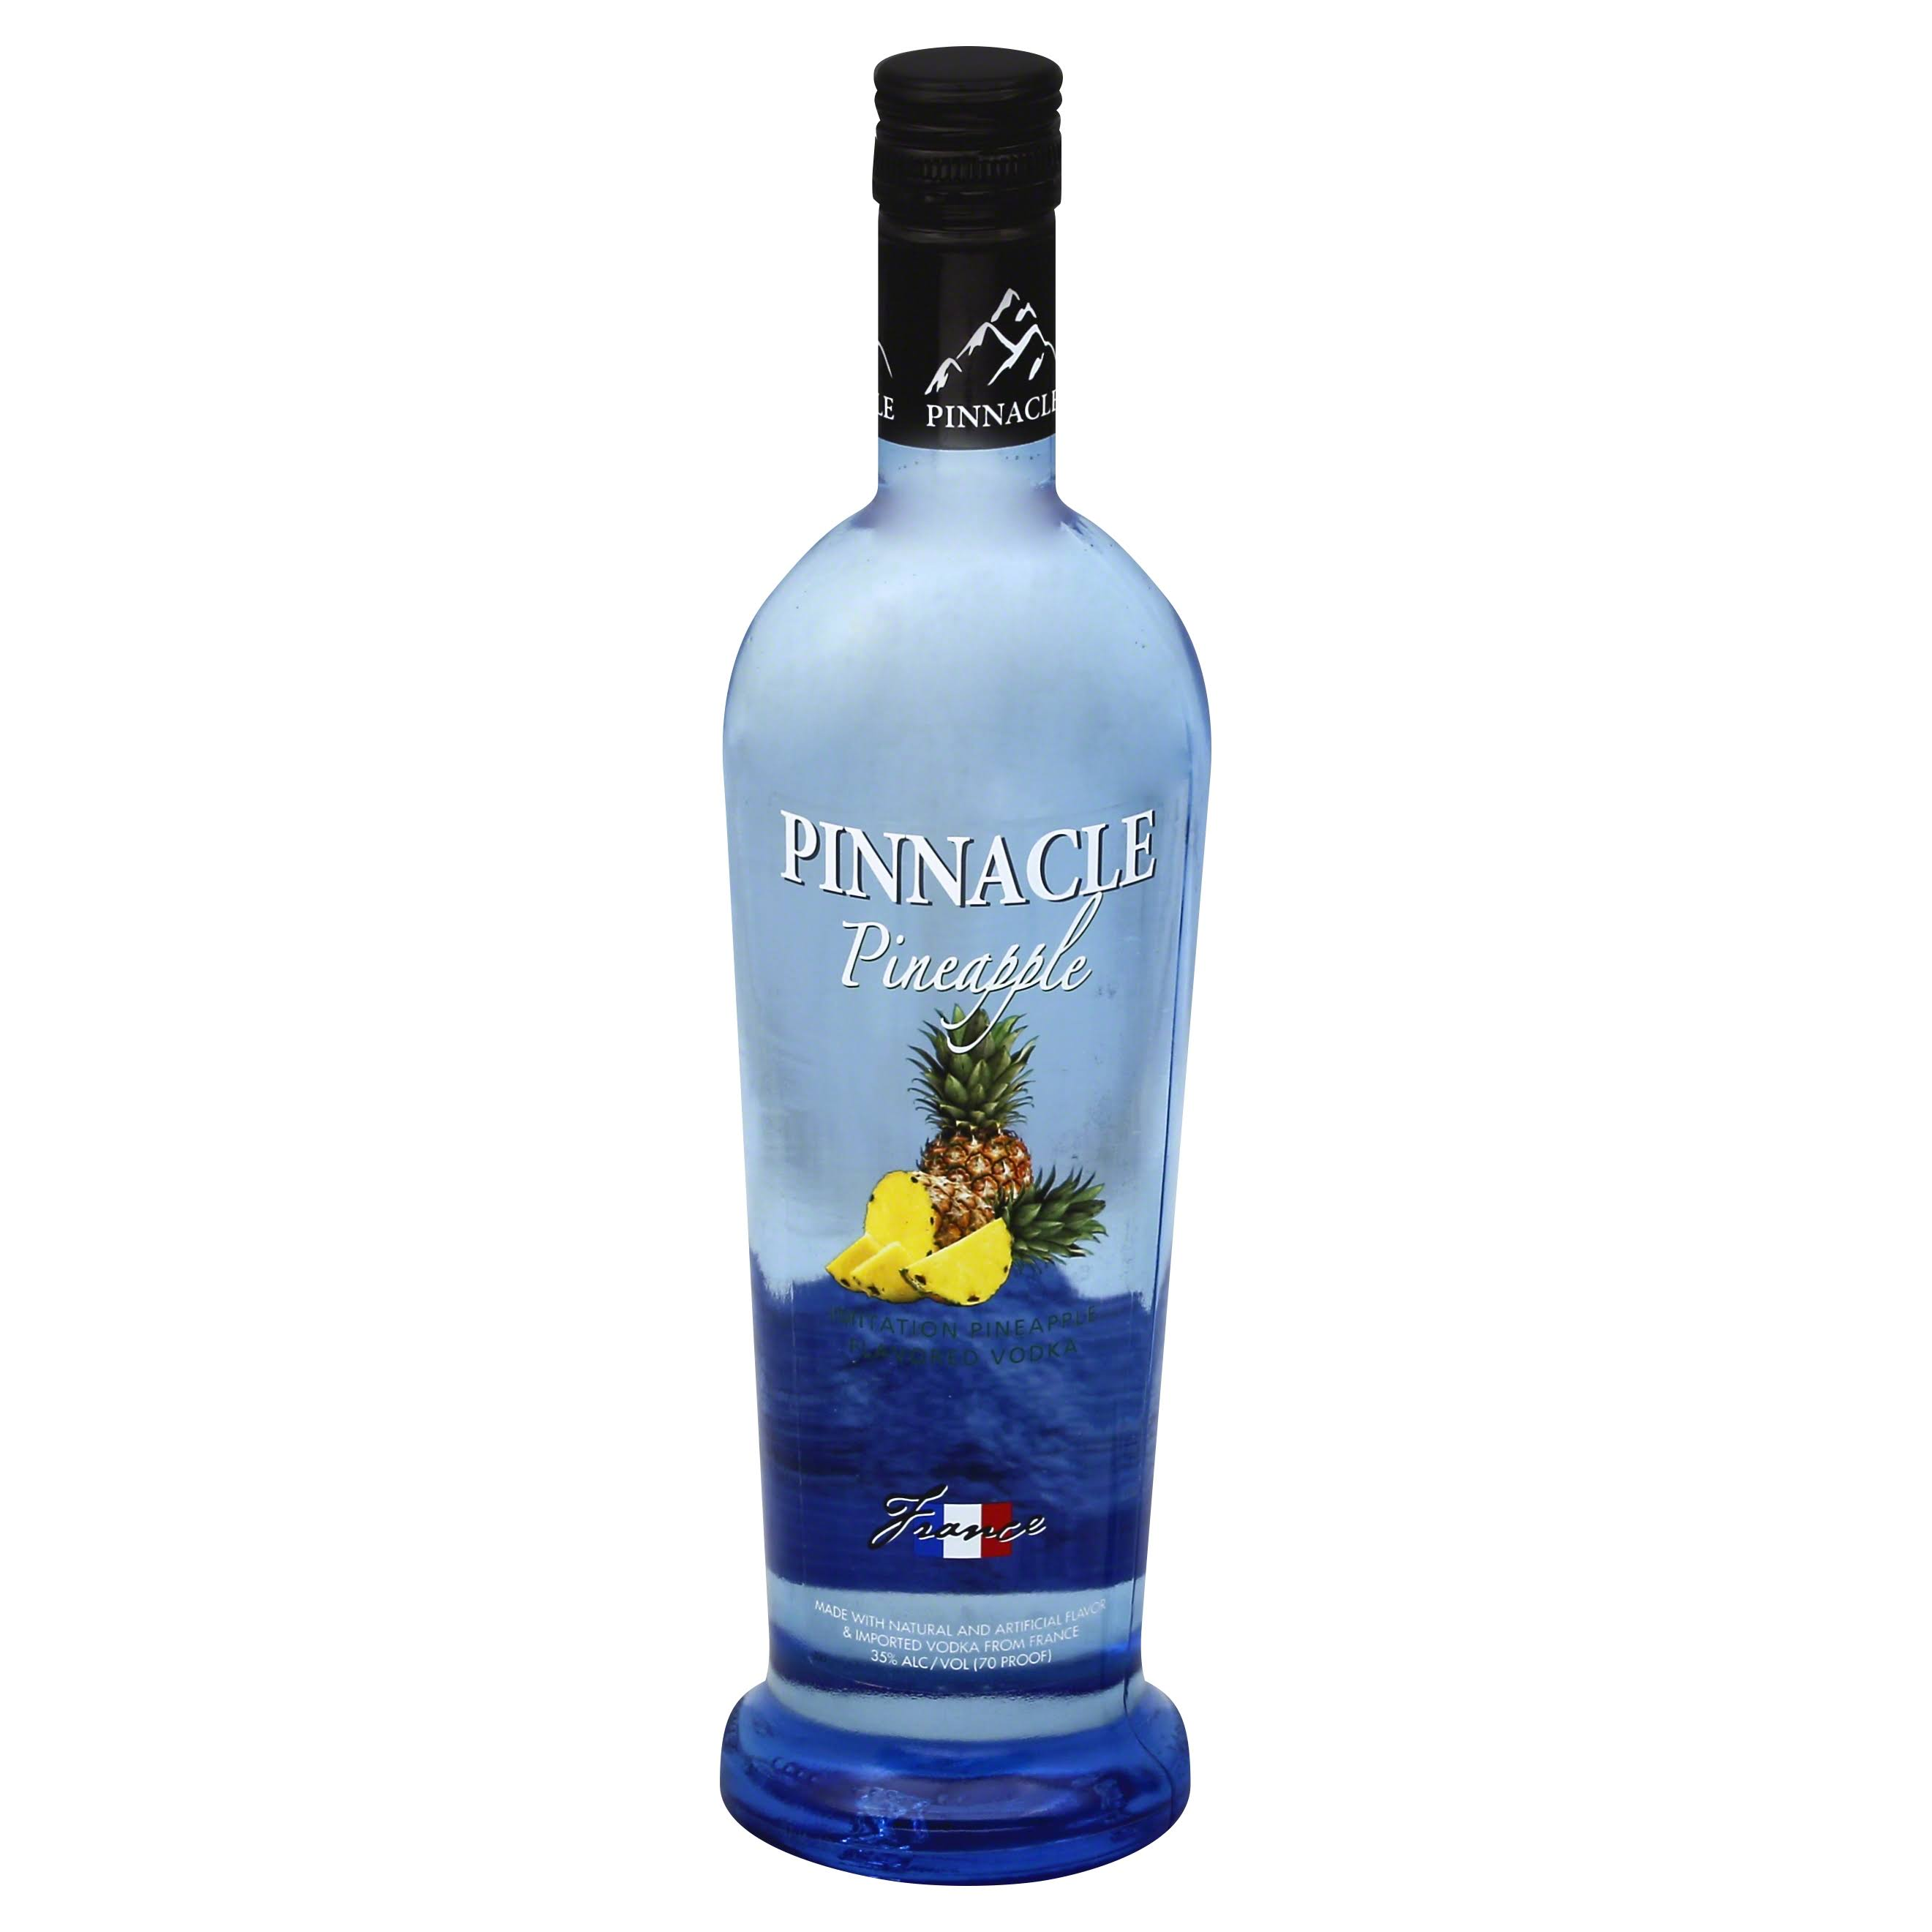 Pinnacle Vodka - 750ml, Pineapple